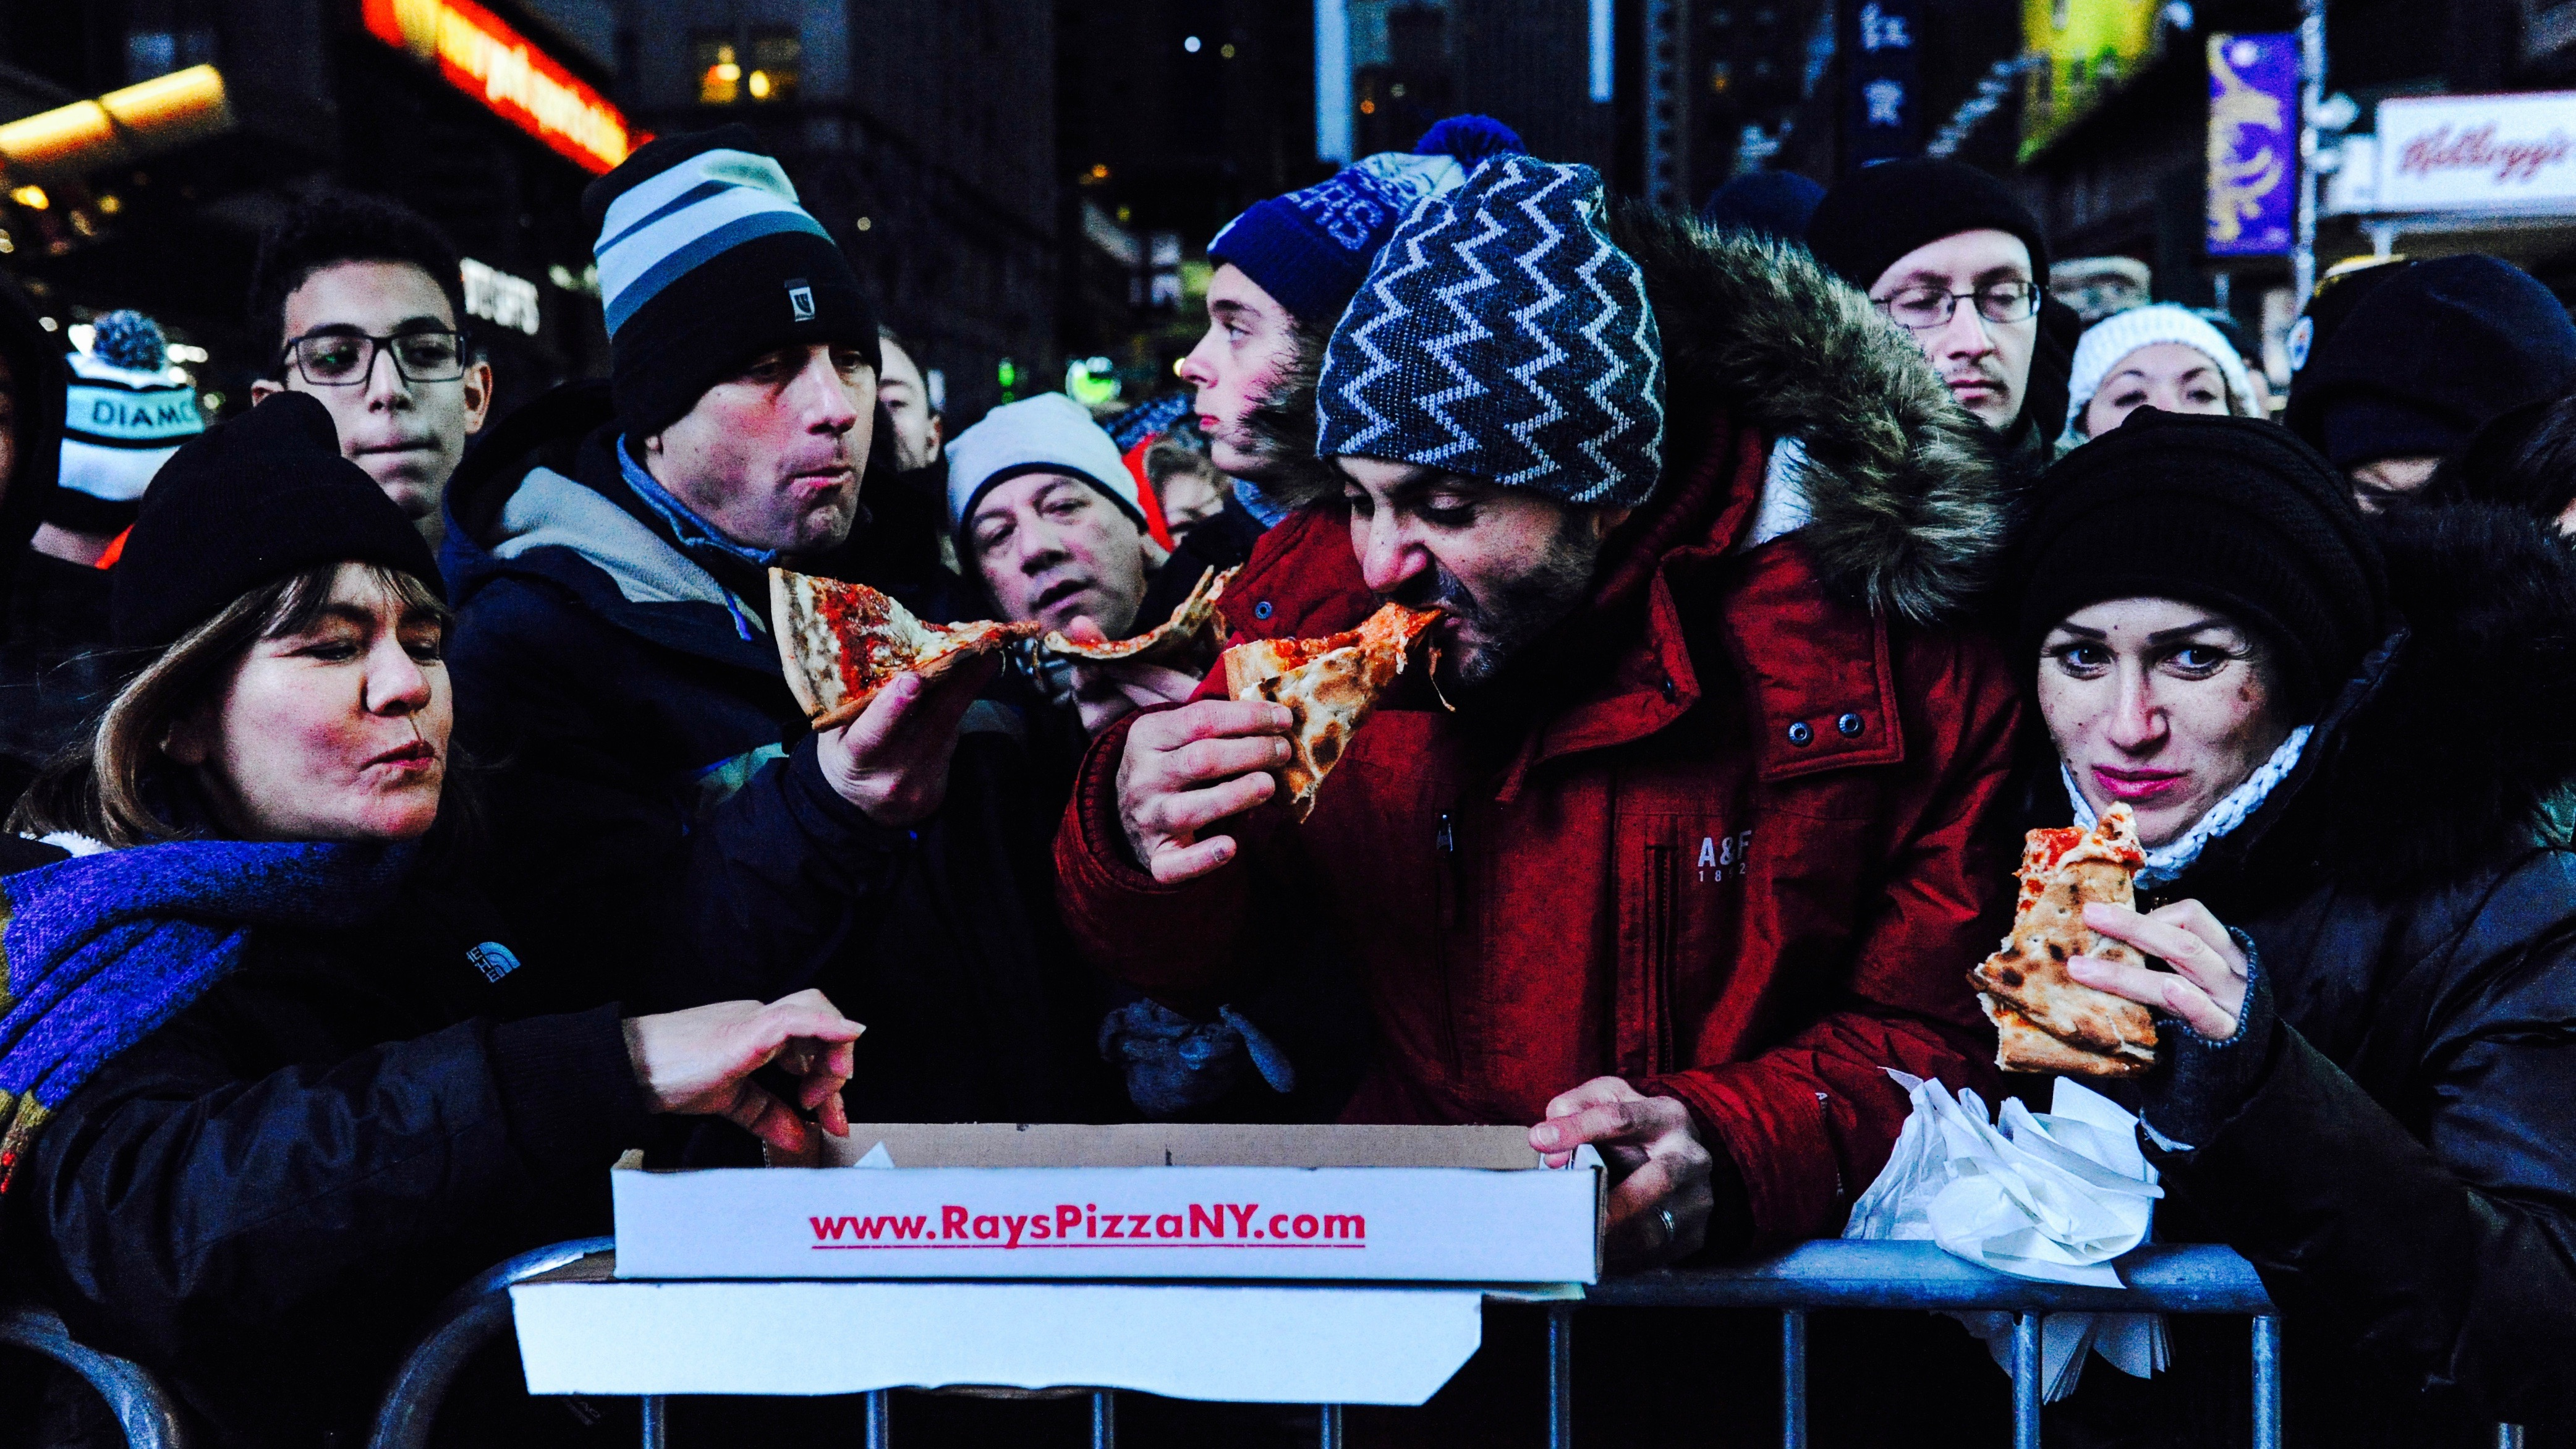 People eating pizza outside in NYC.